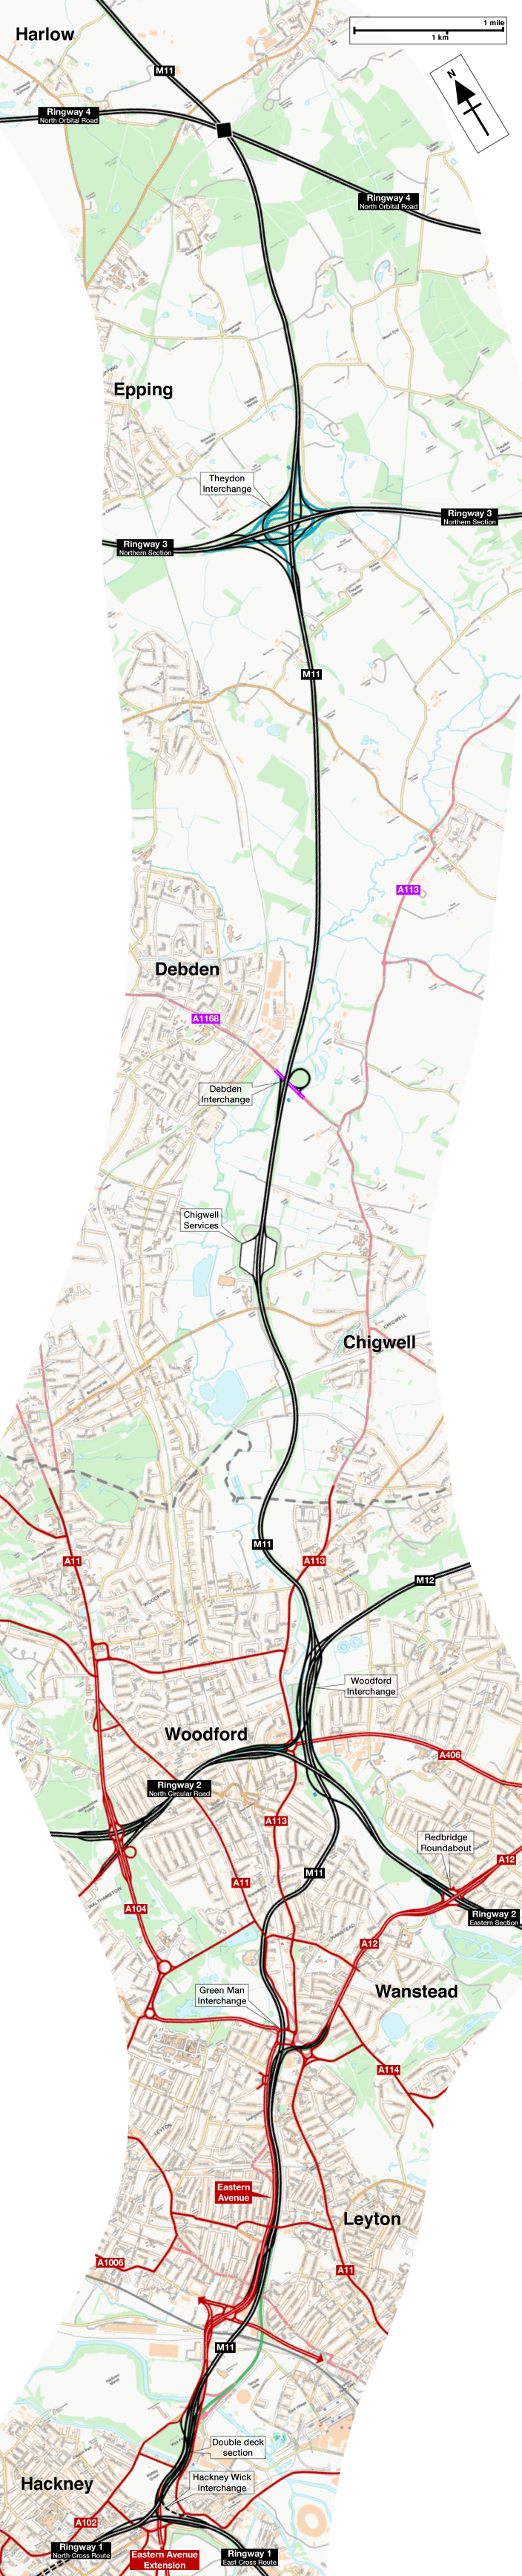 Map of the M11